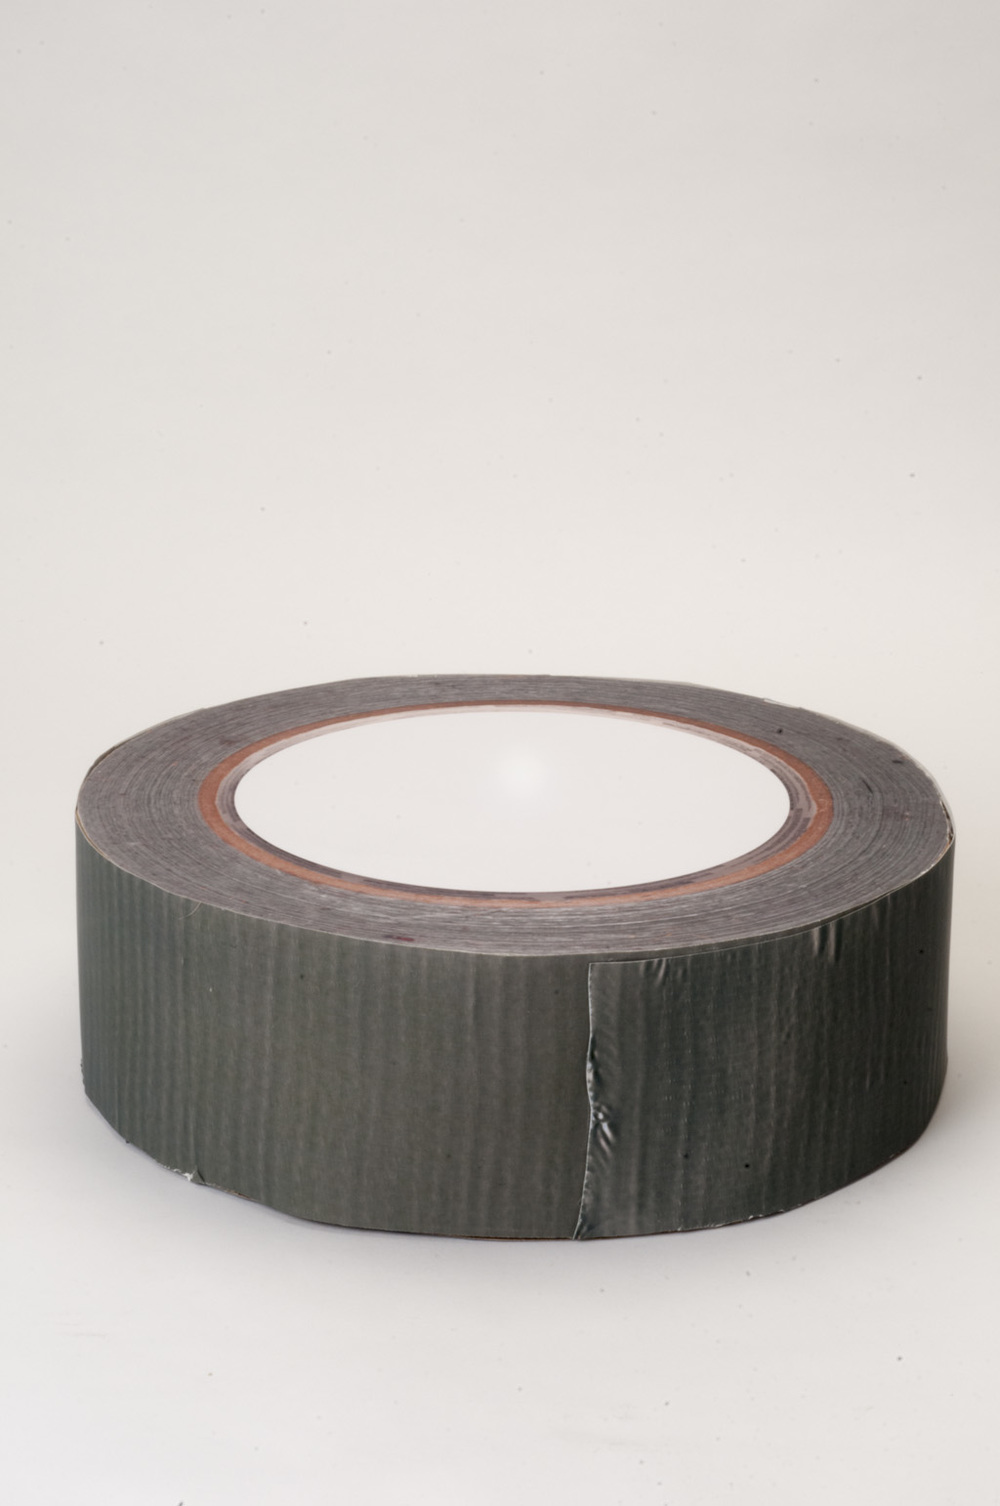 Inventory:  Duct Tape